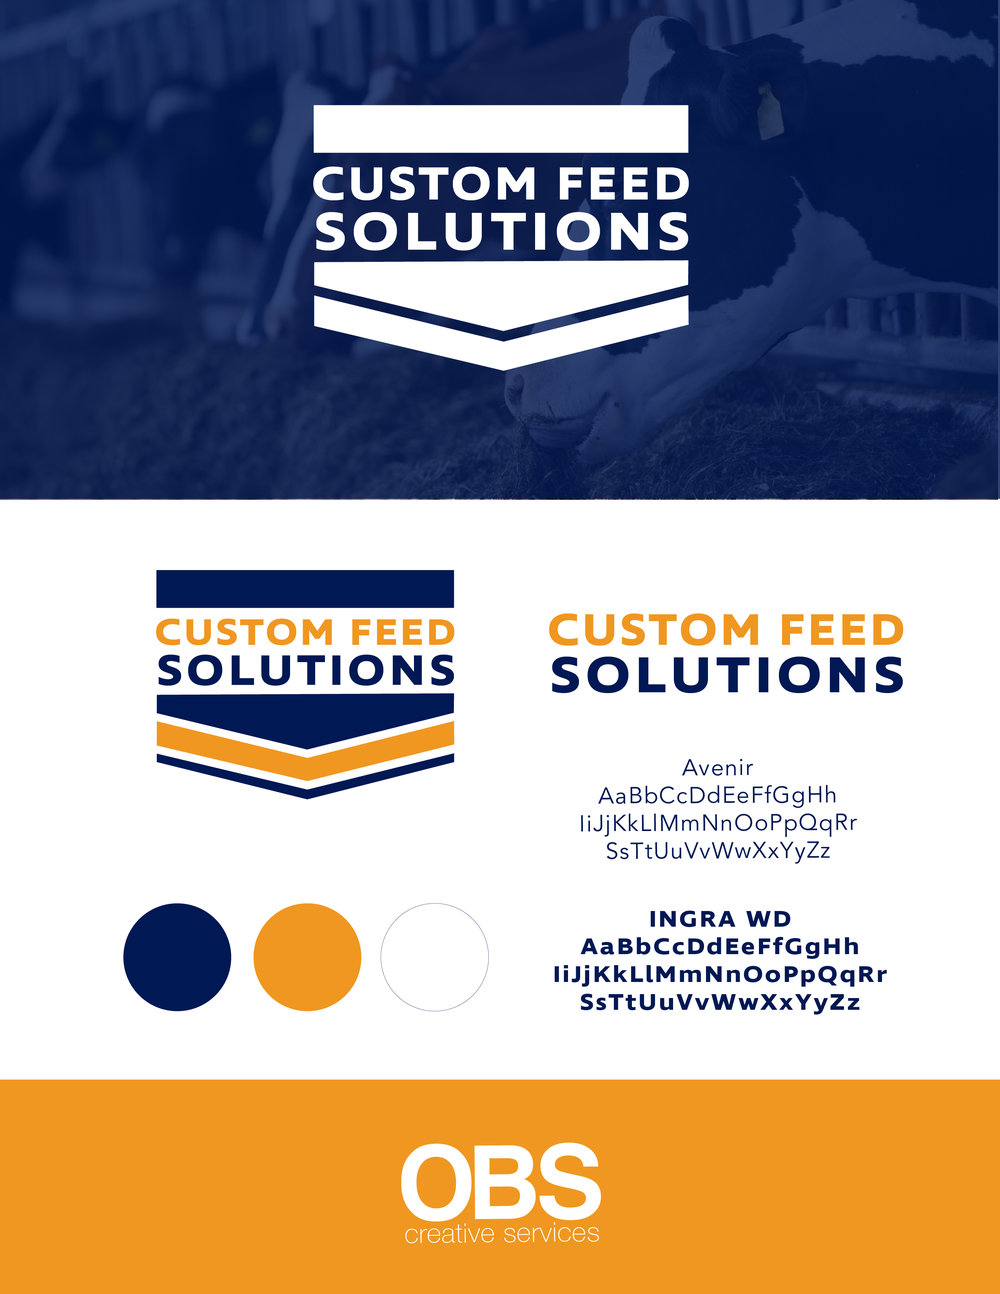 Custom Feed Solutions@300x-100.jpg